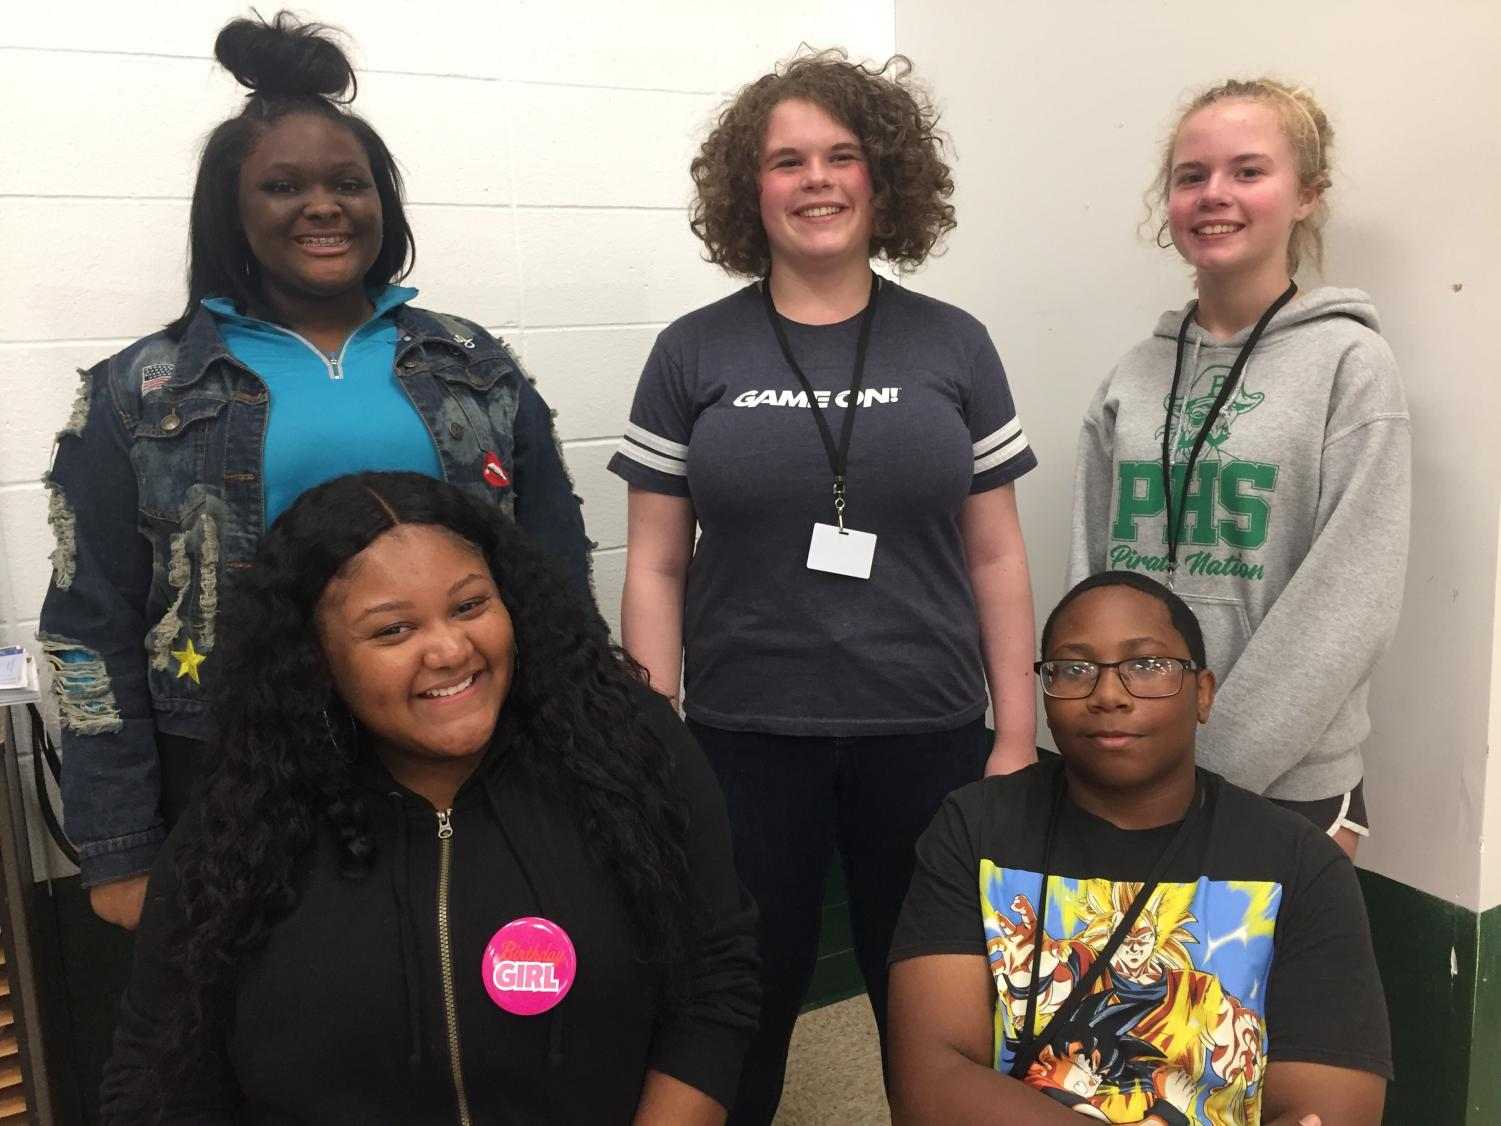 Five PHS choir members make up the 20 total selected in the area for the Opera Theatre of St. Louis Young Artist in Training Program. JaNya Cruise (10), Hannah Radican (10), Grace Radican (10), Kristen Jones (11), and Tony Washington (11).